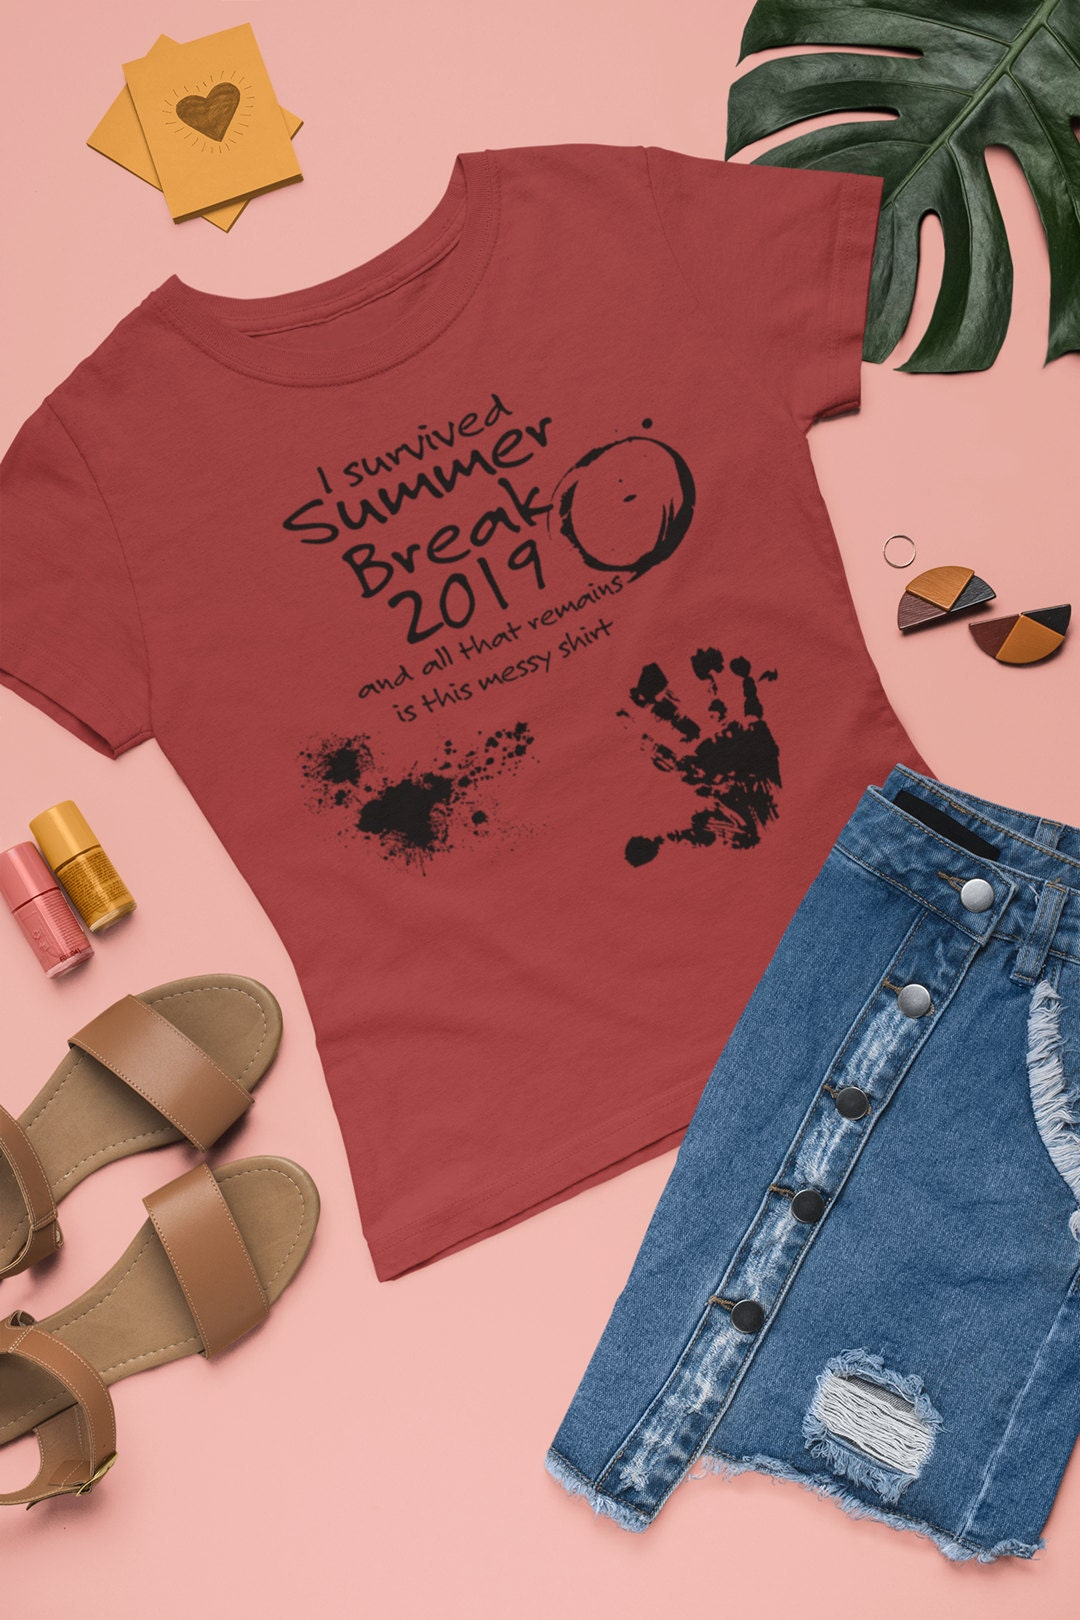 I survived Summer Break 2019 - Limited Edition T-shirt